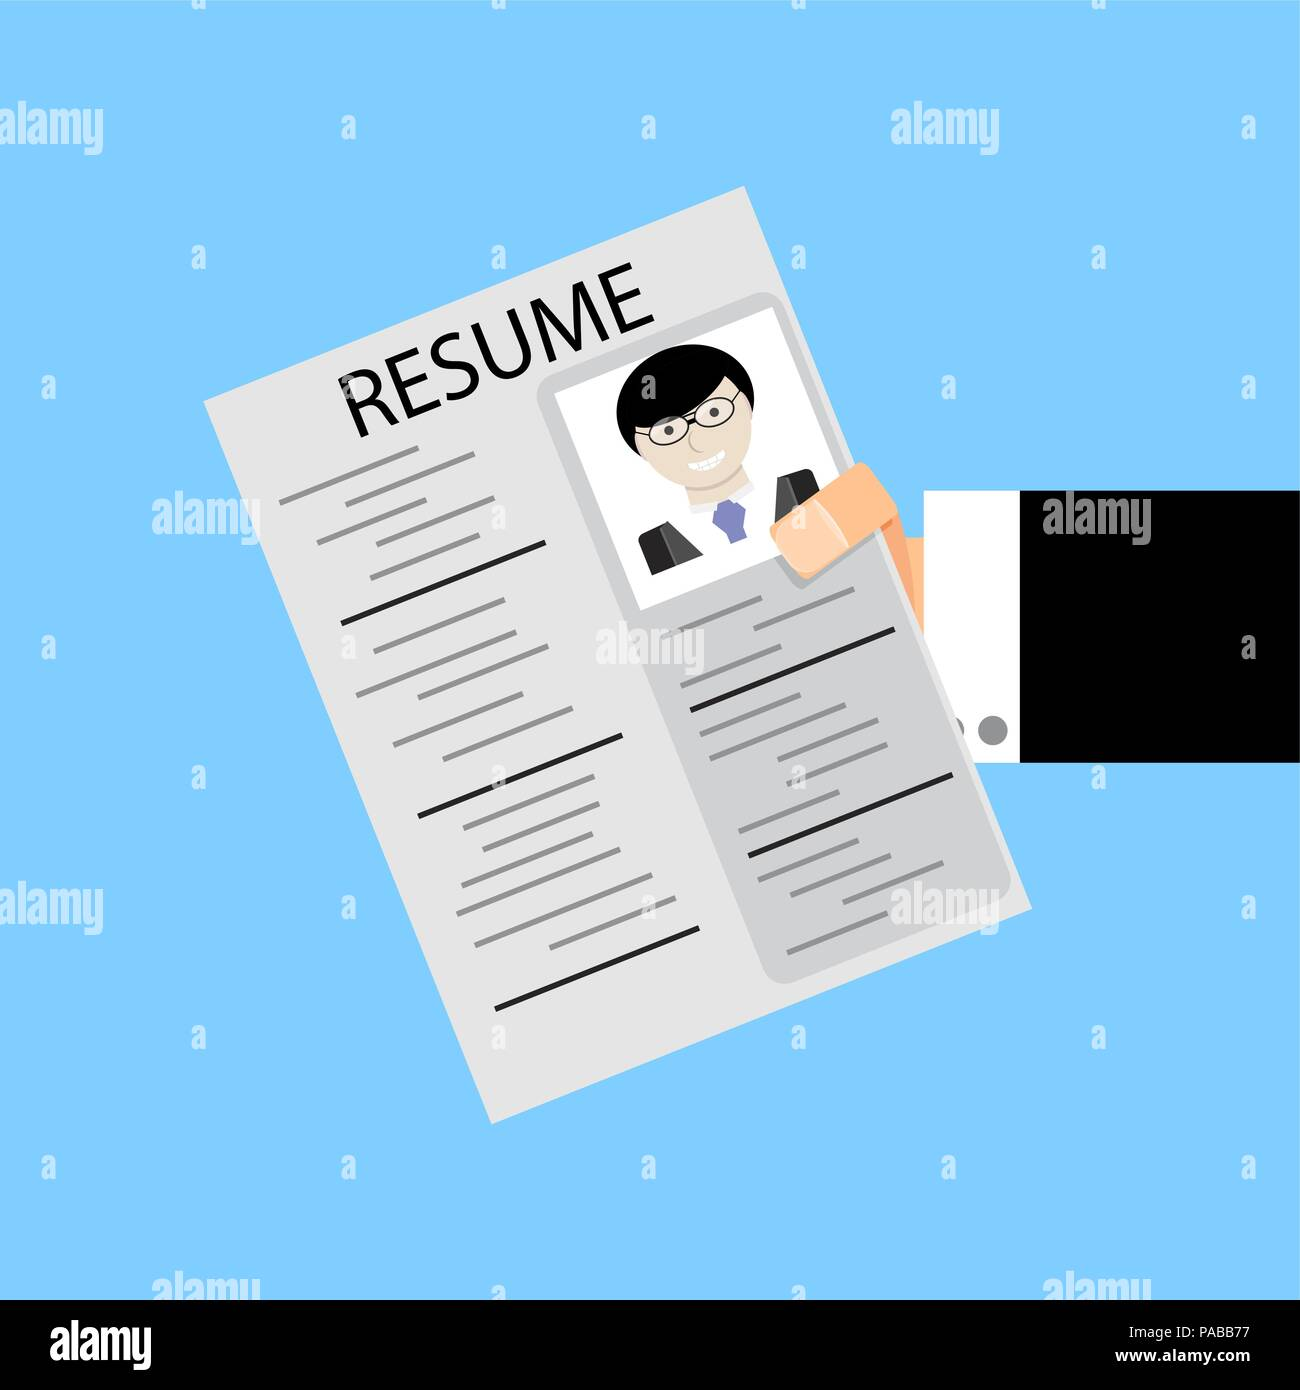 resume in human hold. search job and give cv. vector illustration